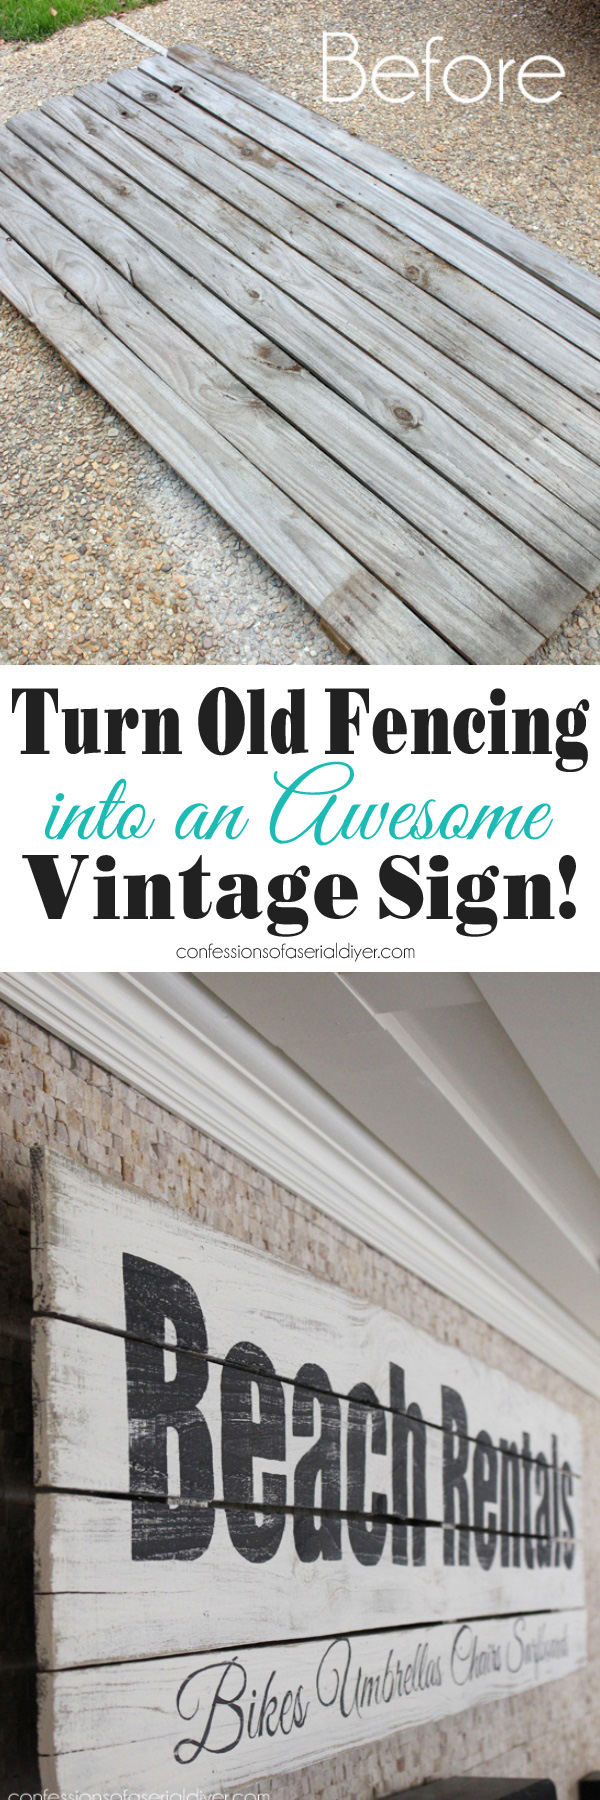 Turn an old fence into a vintage sign confessions of a serial do dont take that old fenicng to the dump make a cool vintage sign baanklon Image collections